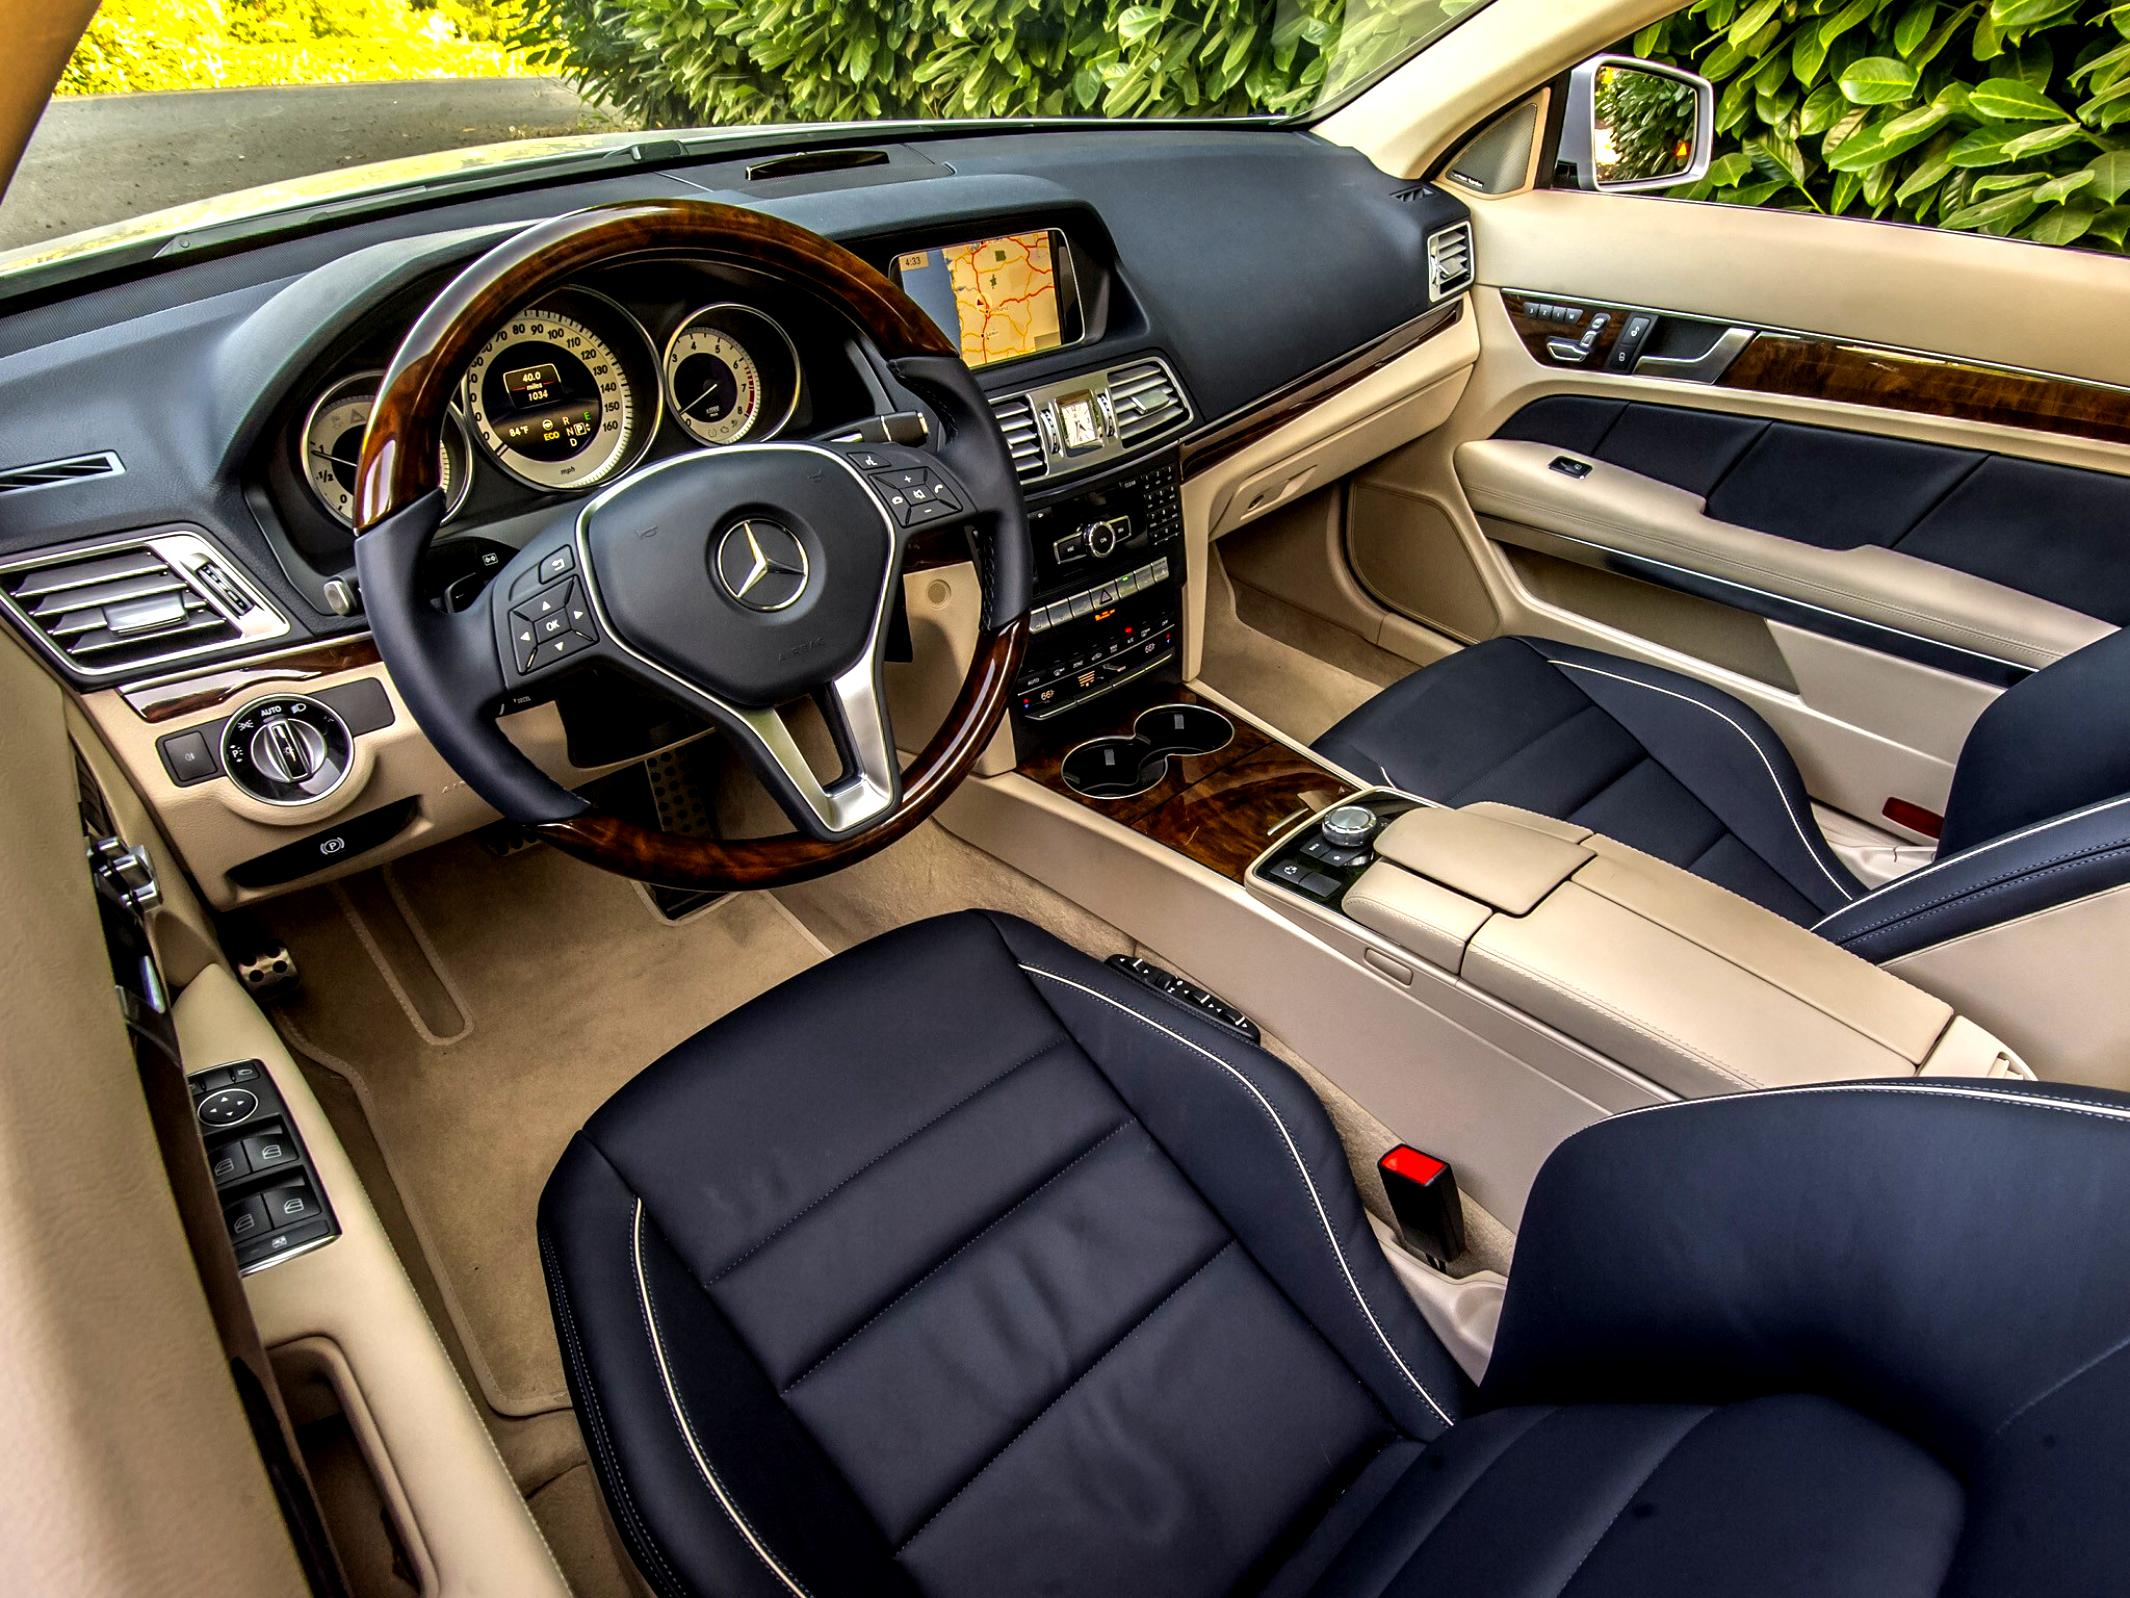 Mercedes Benz E-Klasse Coupe C207 2013 #92